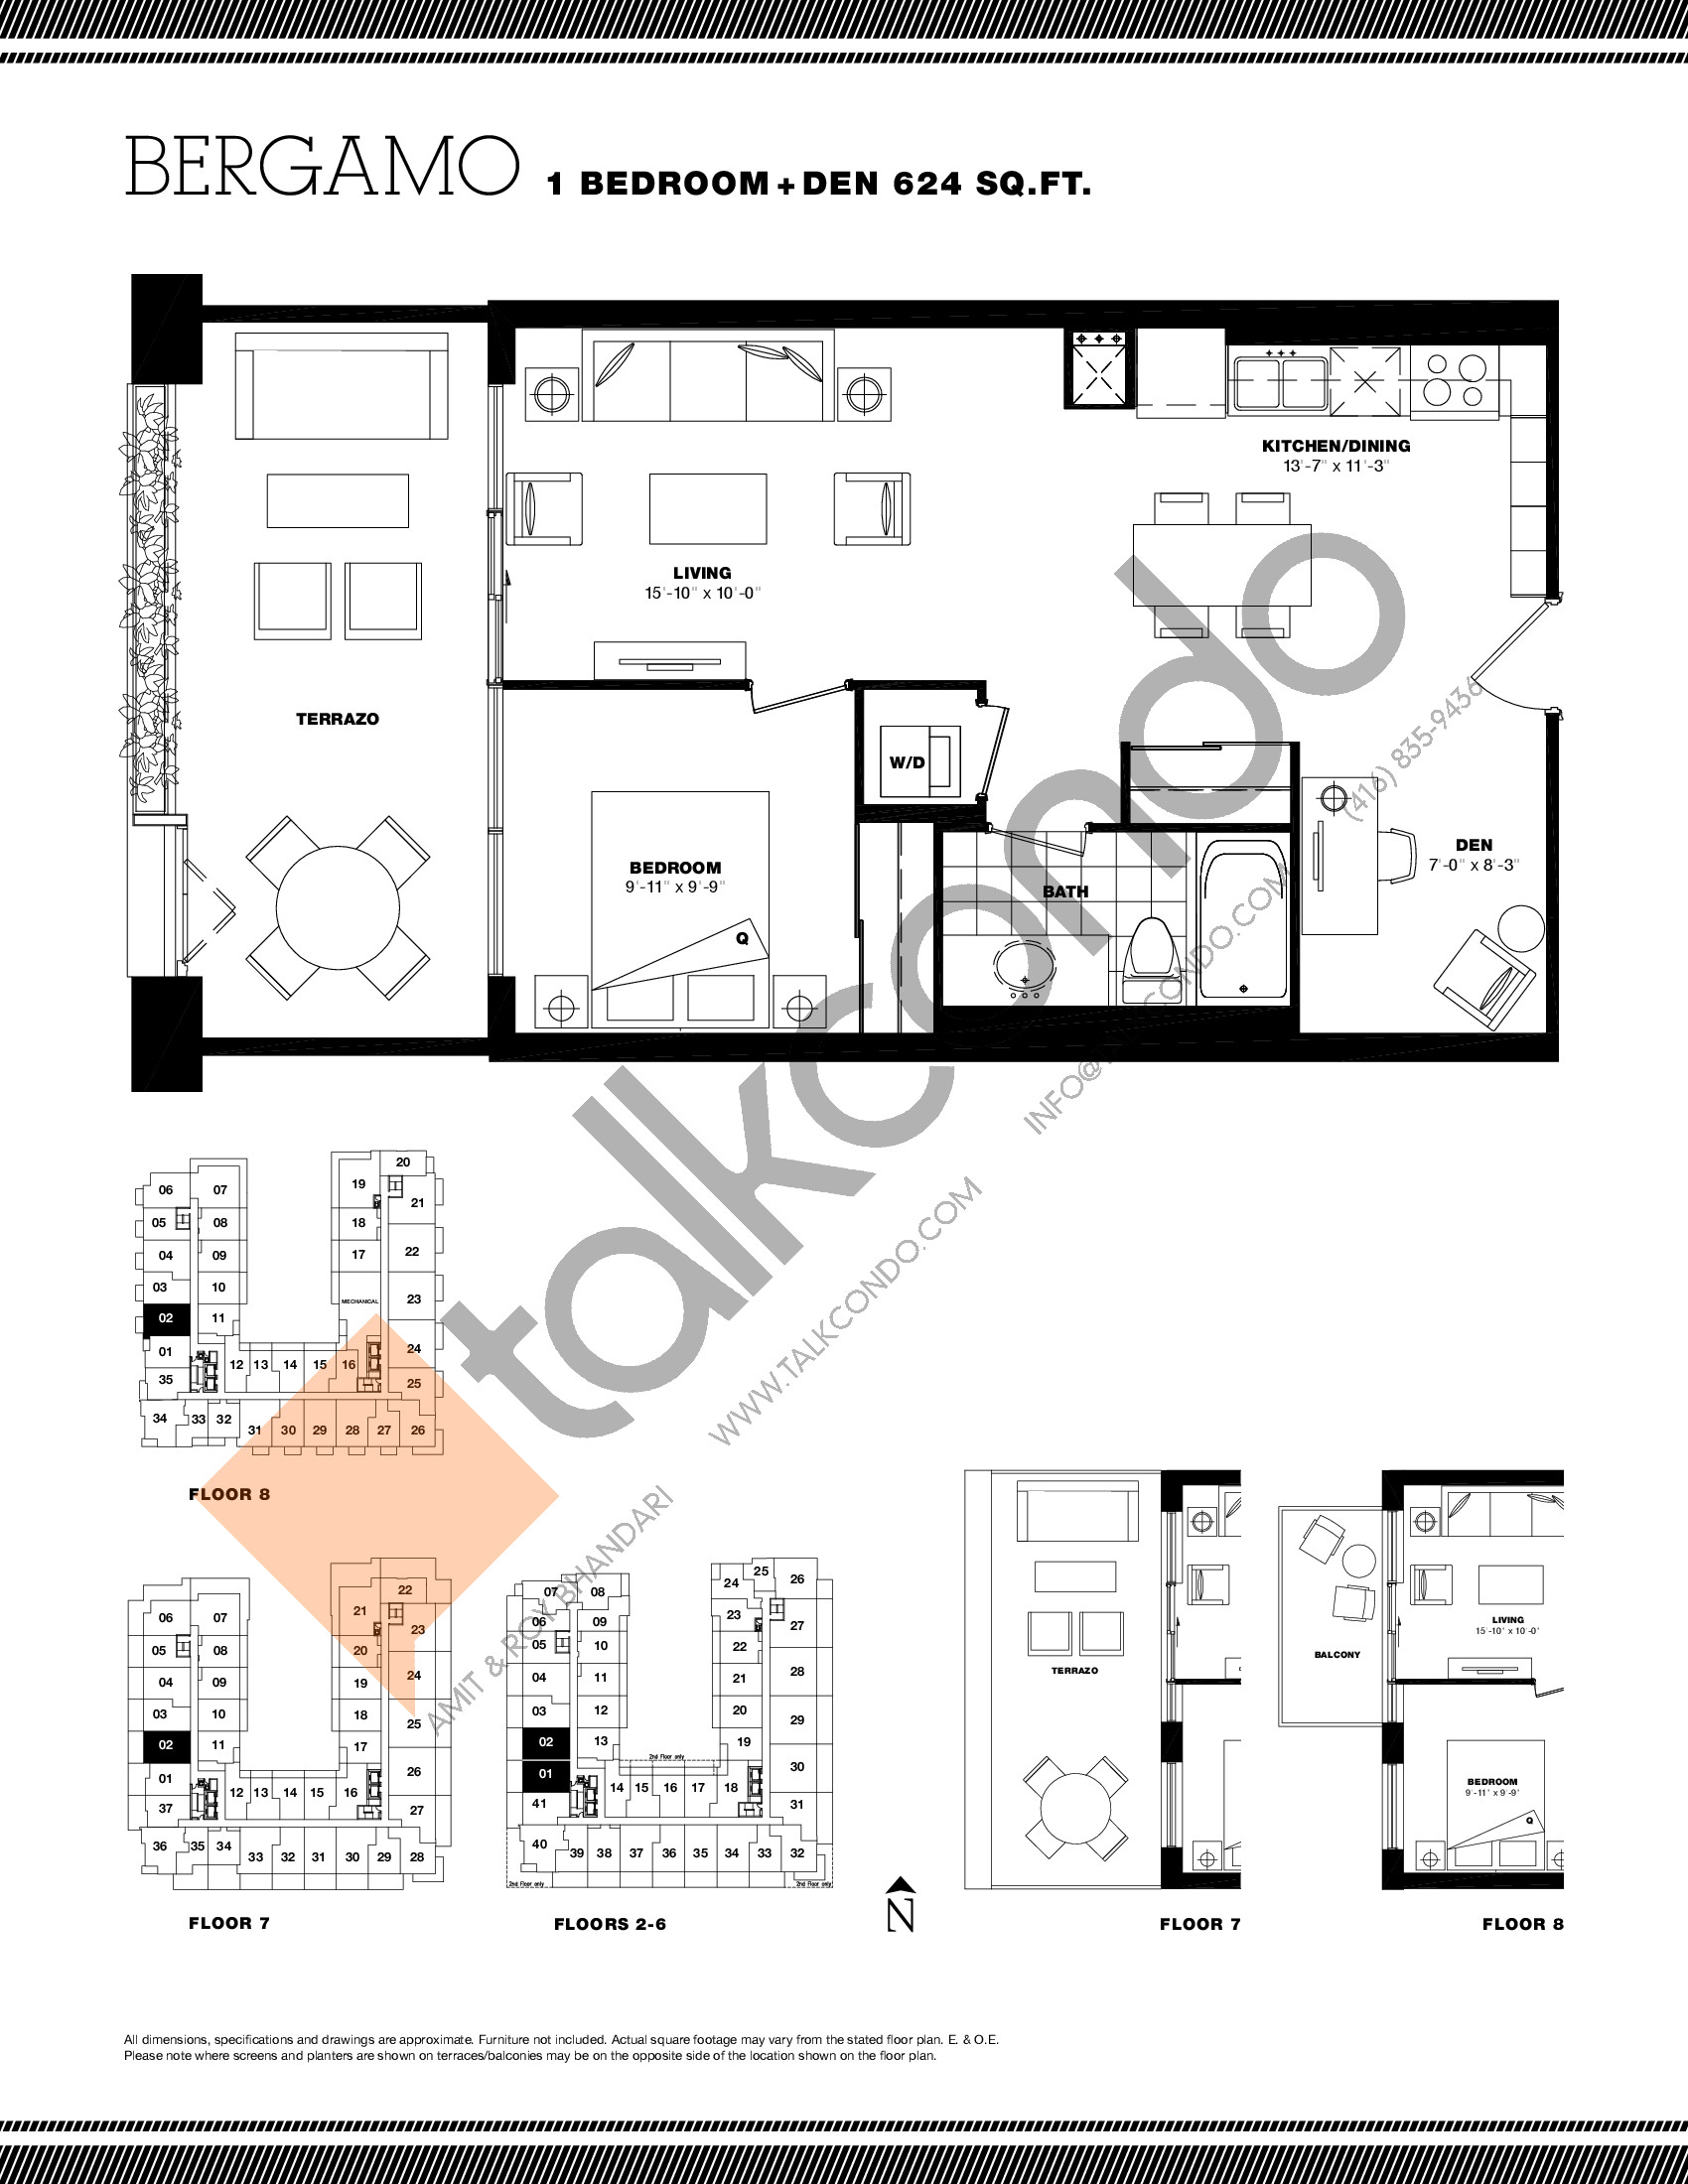 Bergamo Floor Plan at Residenze Palazzo at Treviso 3 Condos - 624 sq.ft